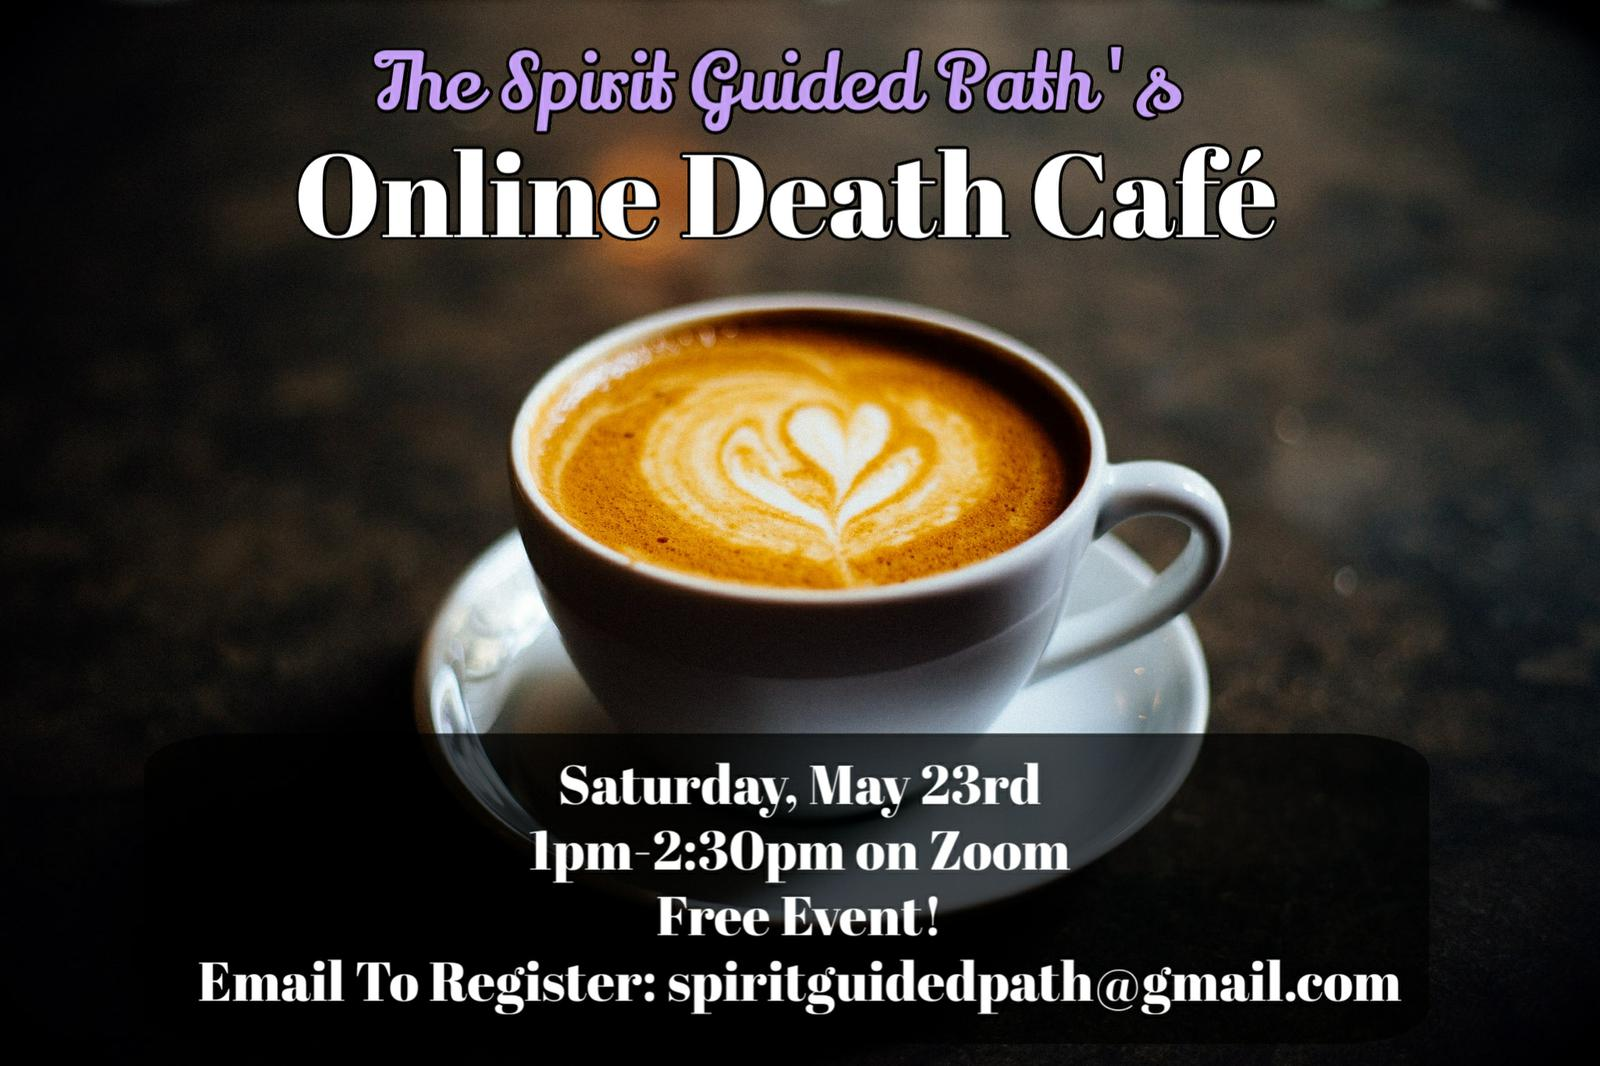 The Spirit Guided Path's Online Death Cafe